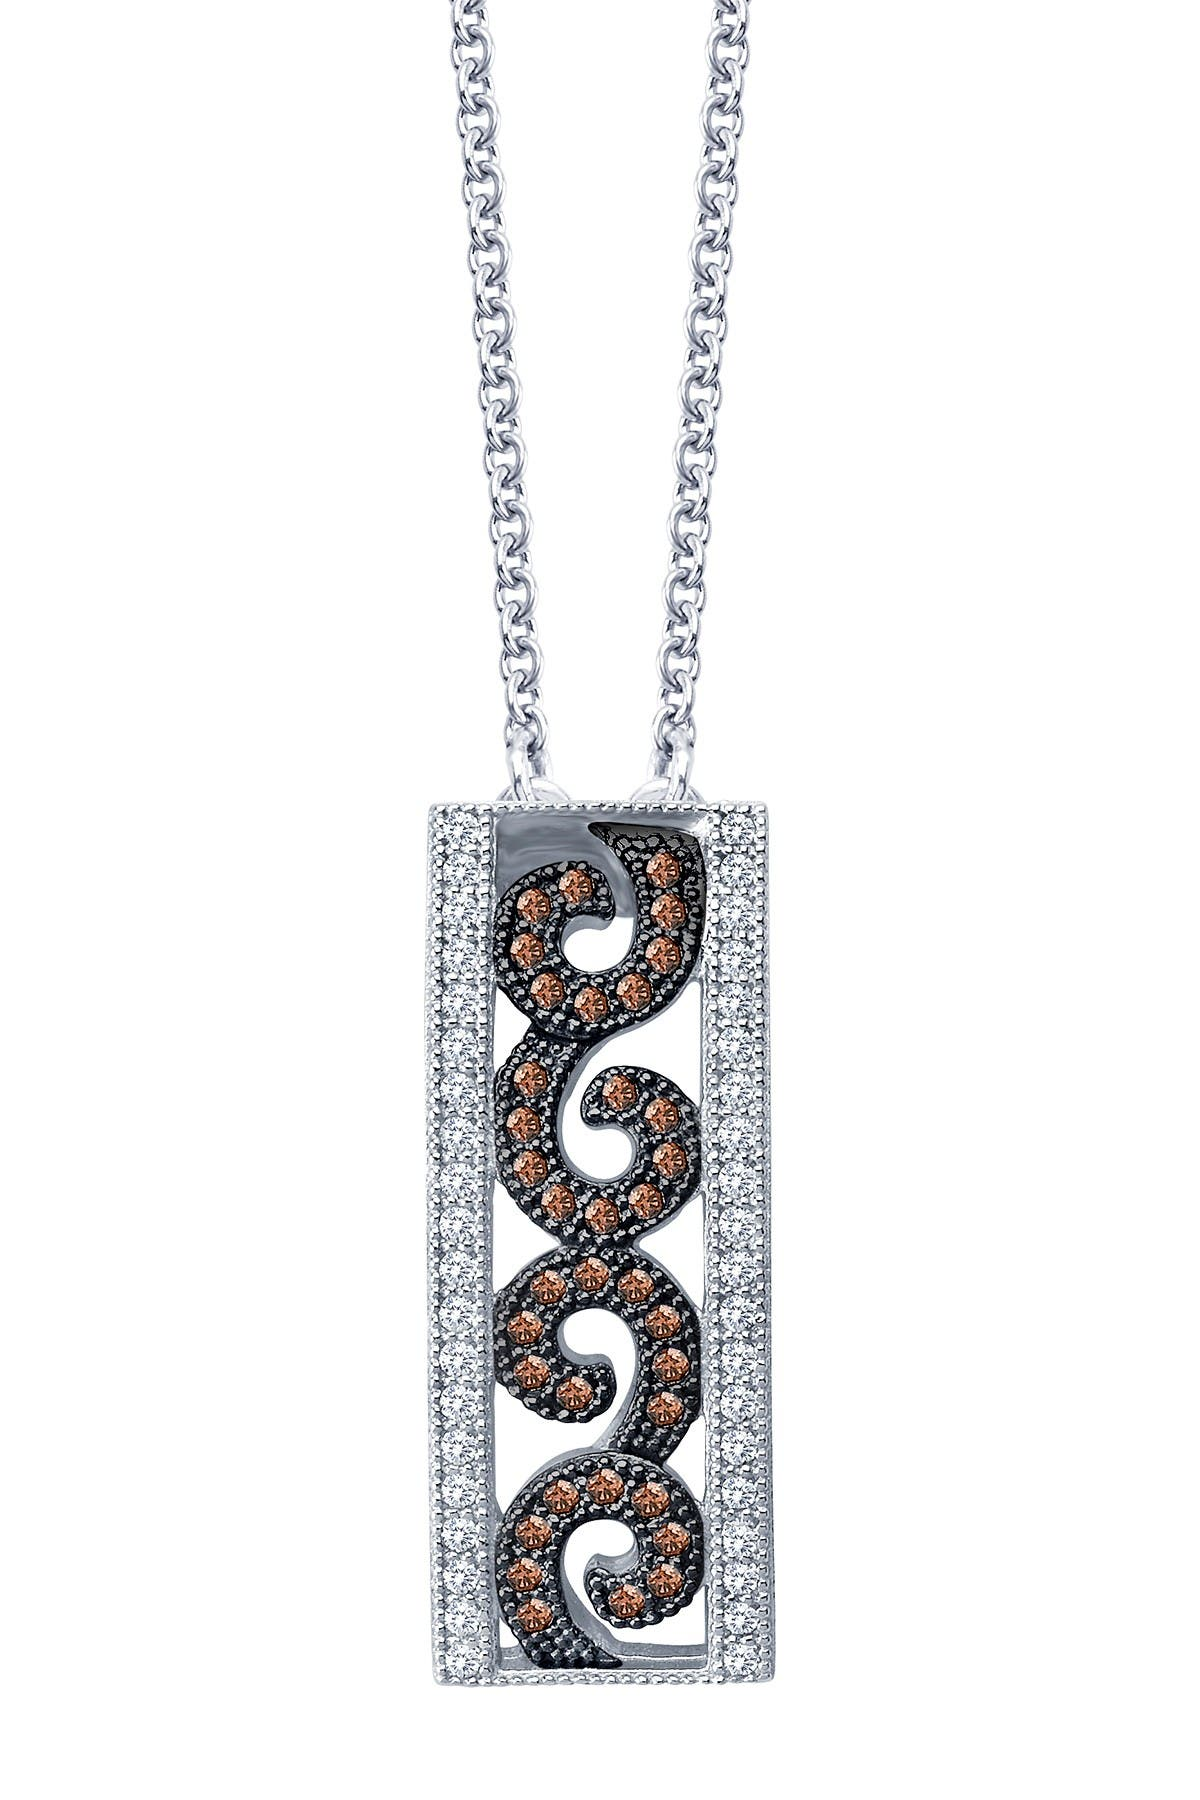 Image of LaFonn Platinum Plated Sterling Silver Micro Pave Simulated Diamond Filigree Pendant Necklace